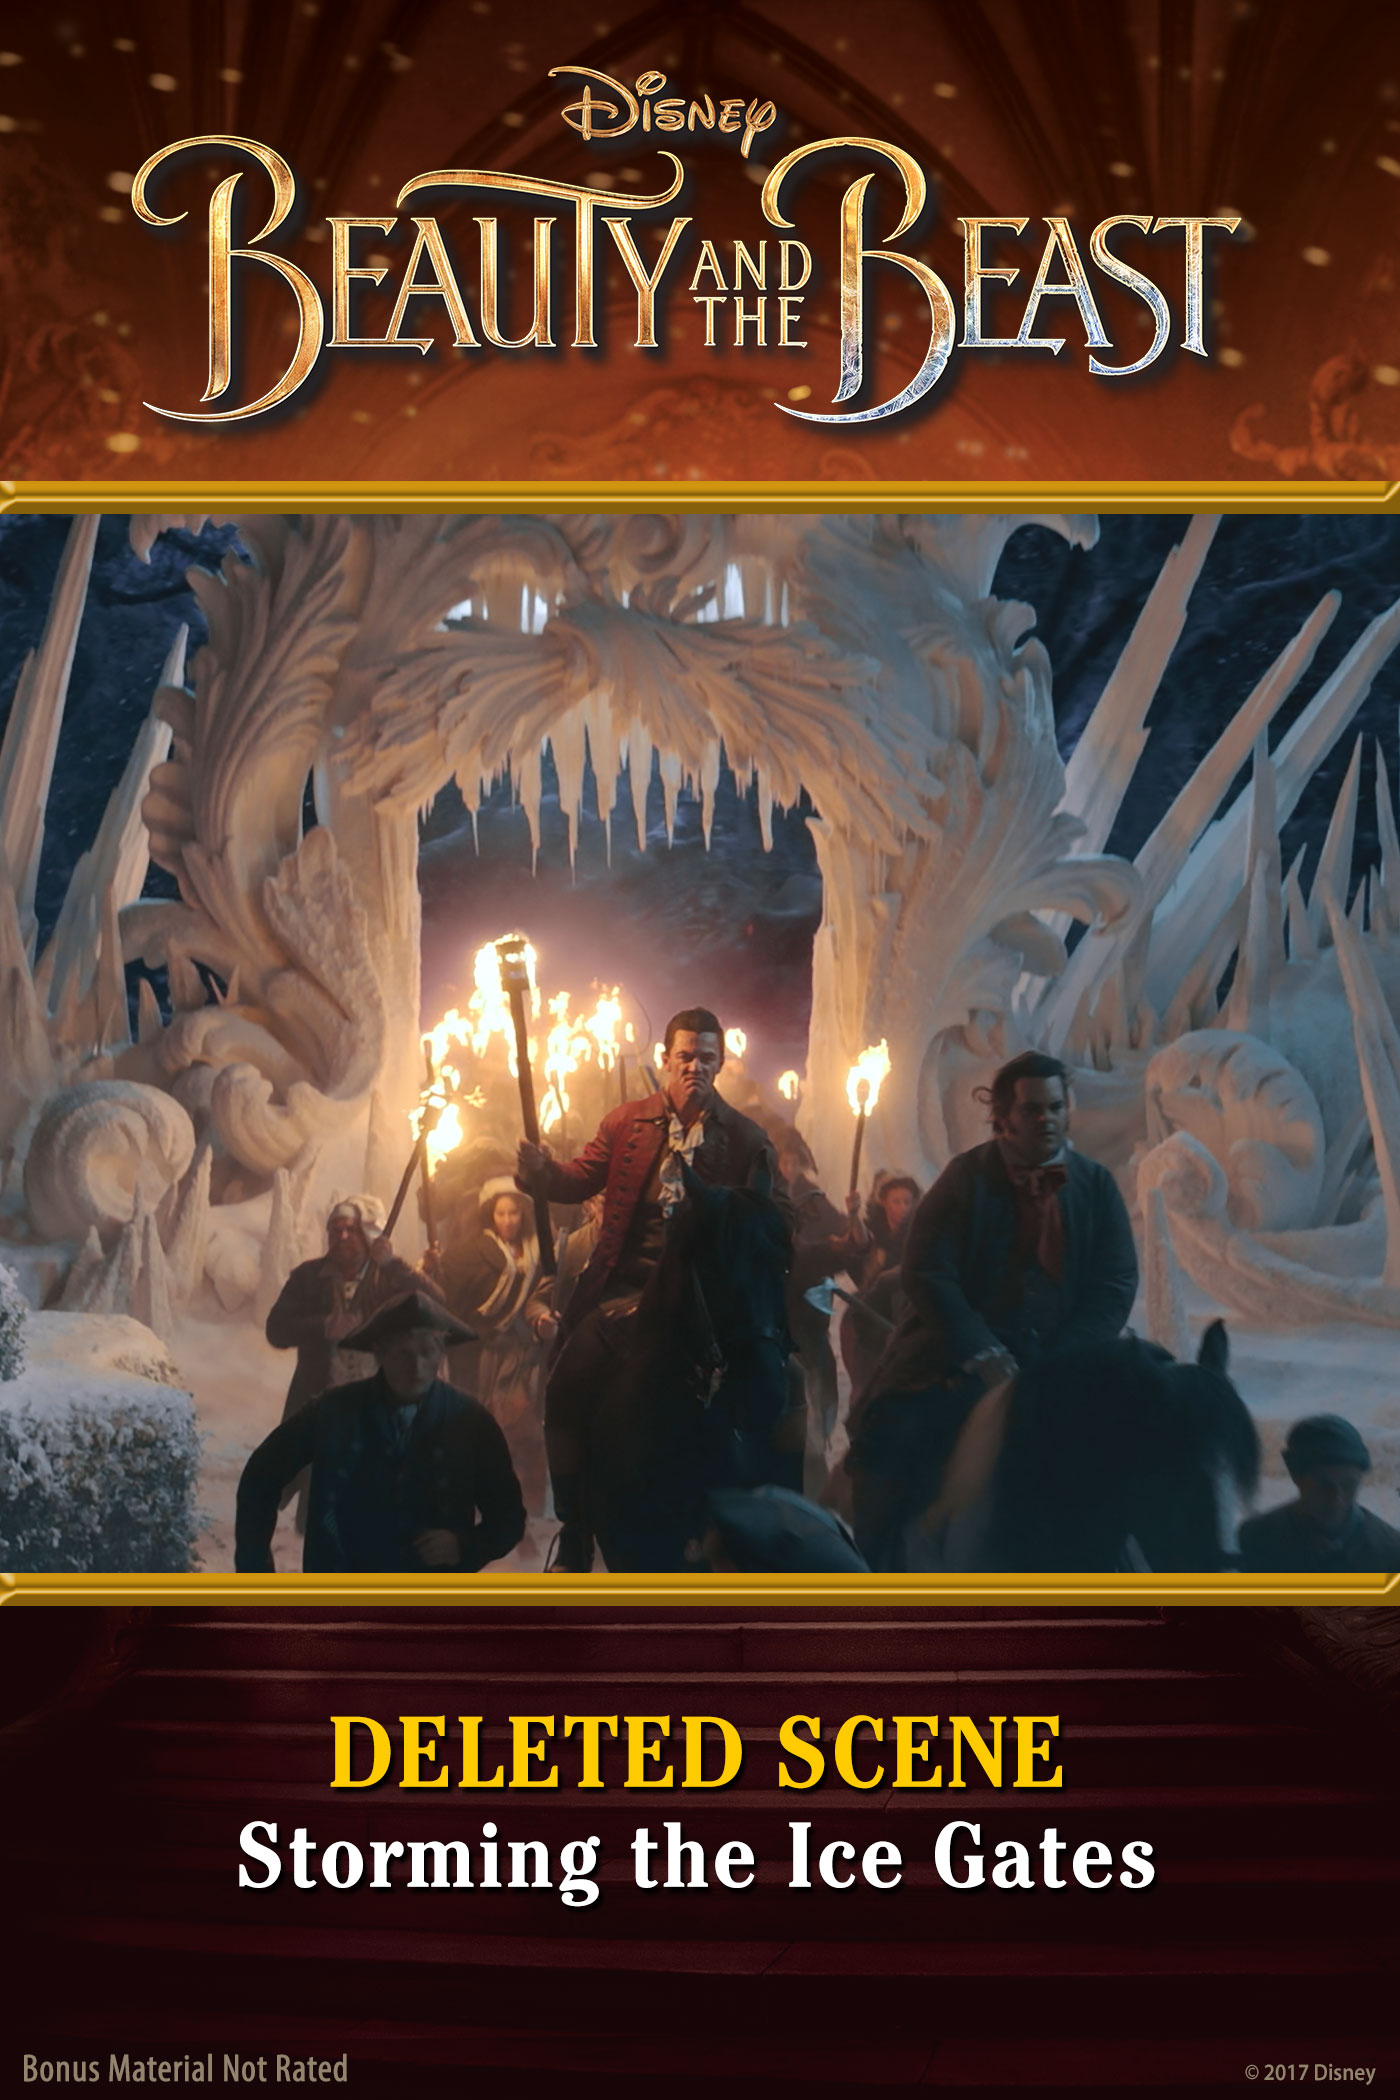 Deleted Scene: Storming the Ice Gates